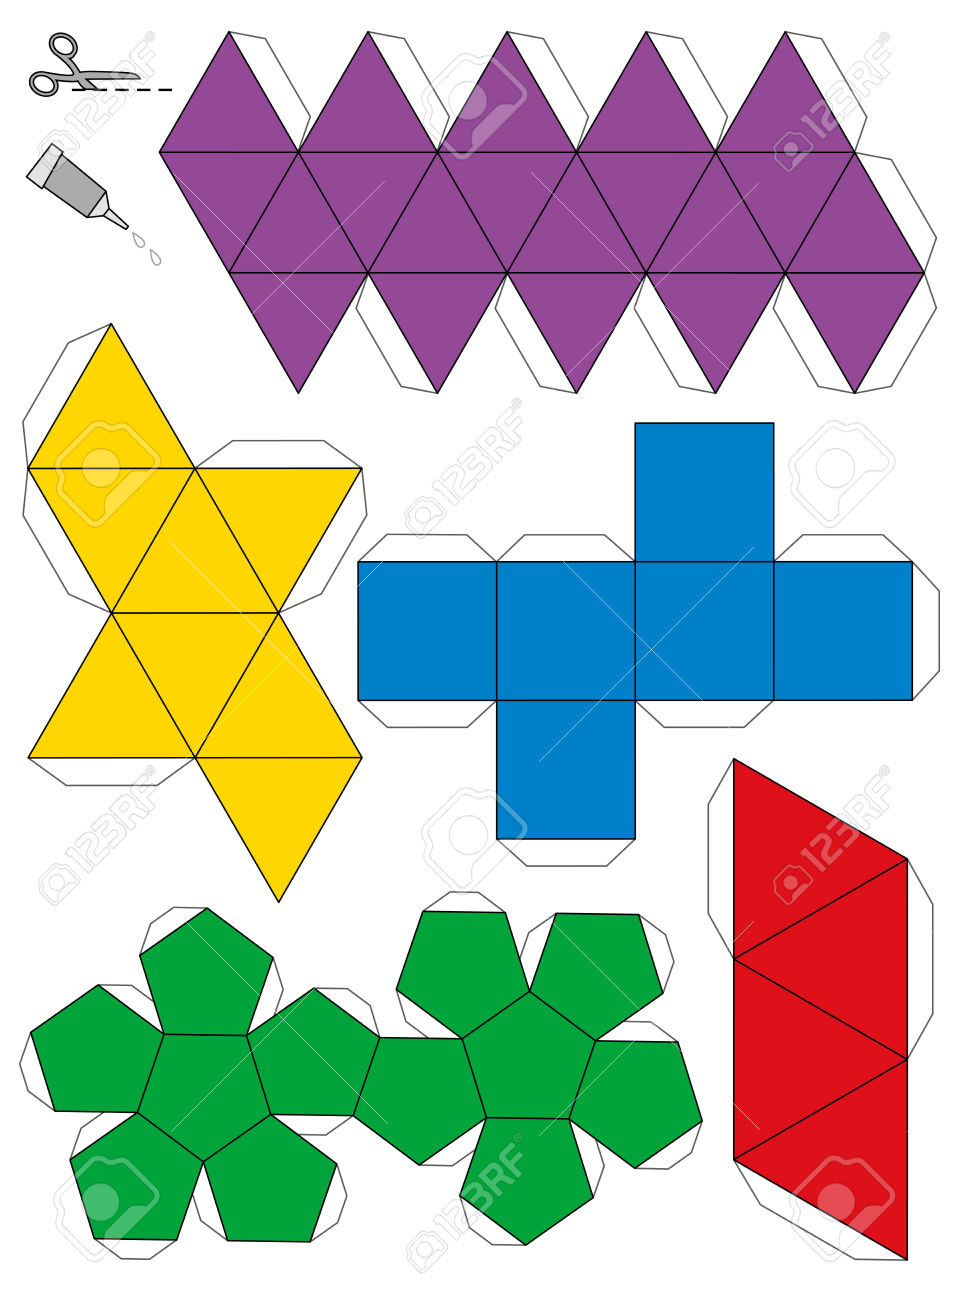 Paper Model Template Of The Five Platonic Solids, To Make A Three.